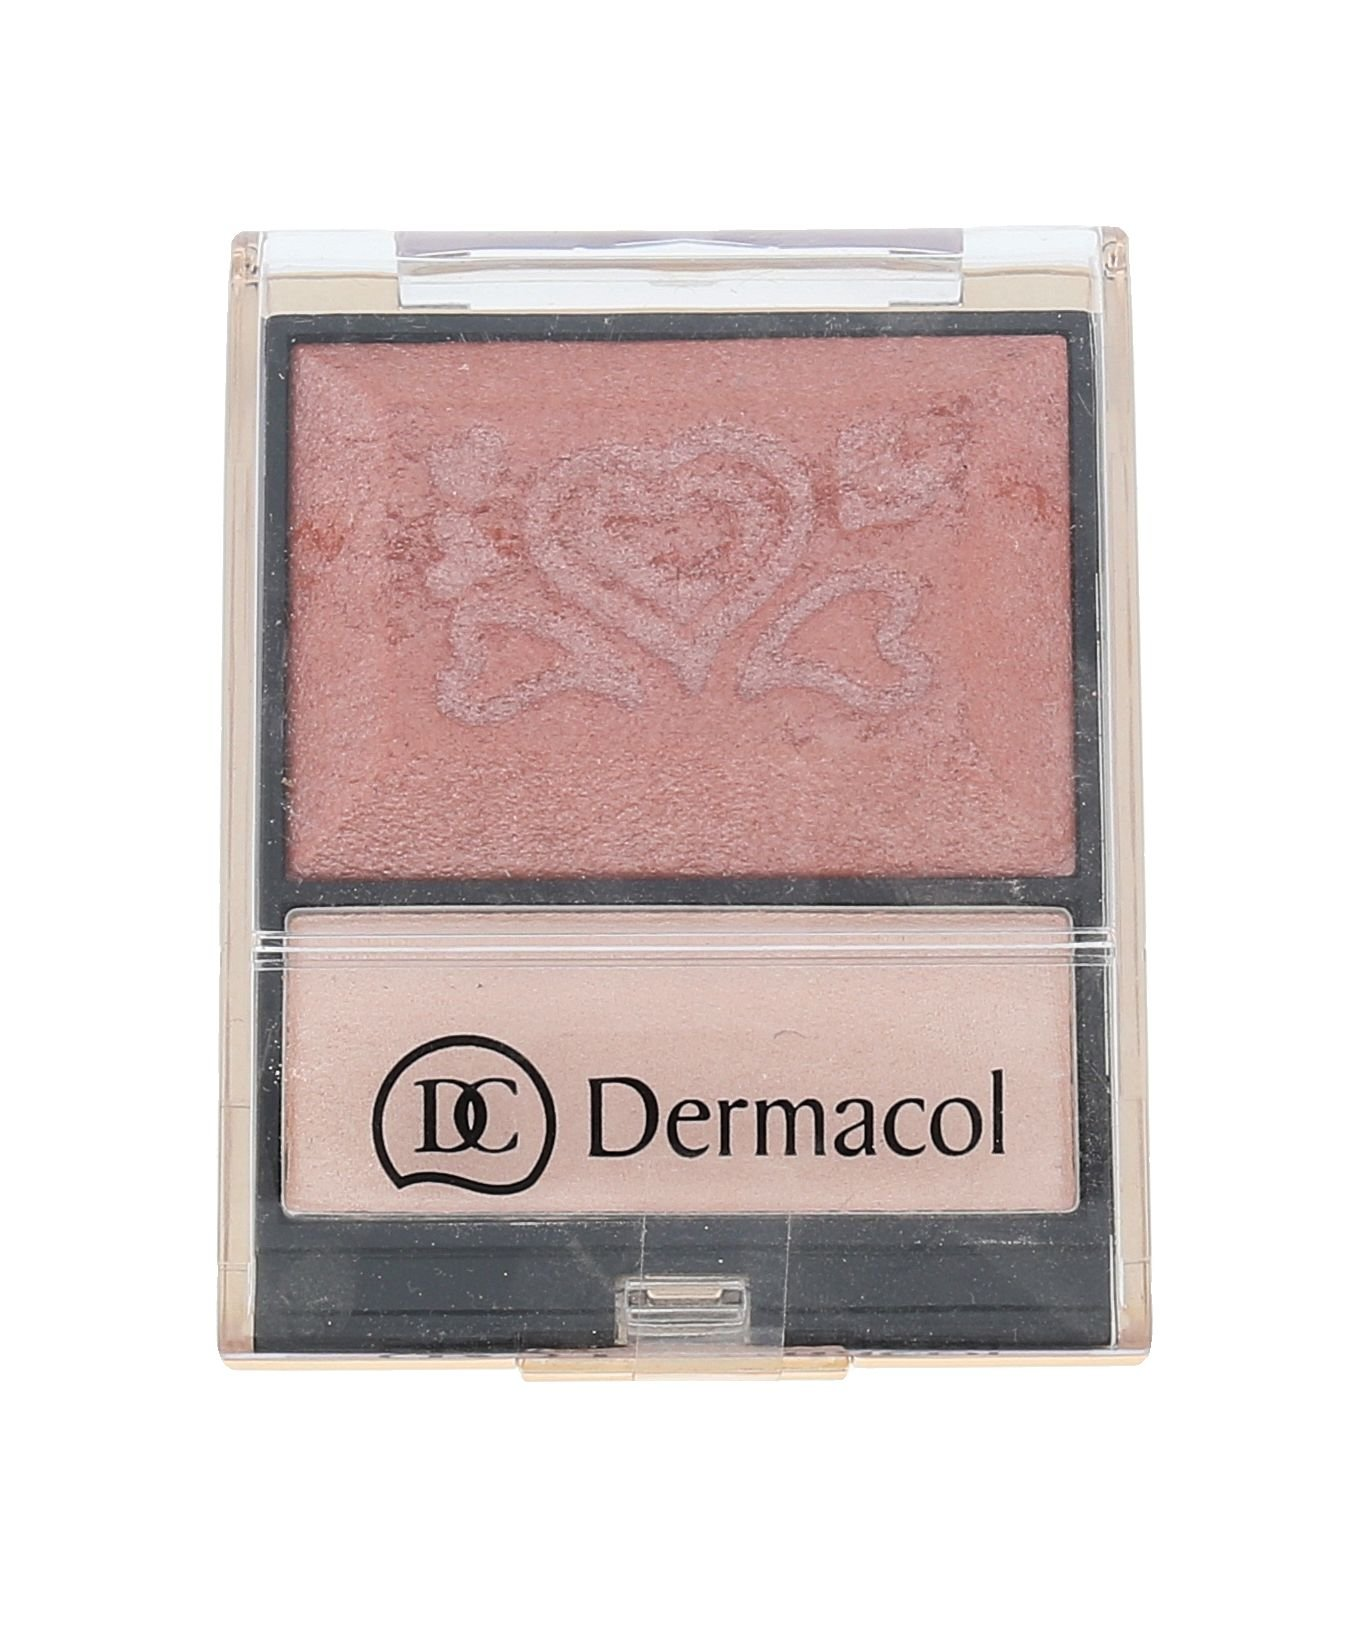 Dermacol Blush & Illuminator Cosmetic 9ml 1